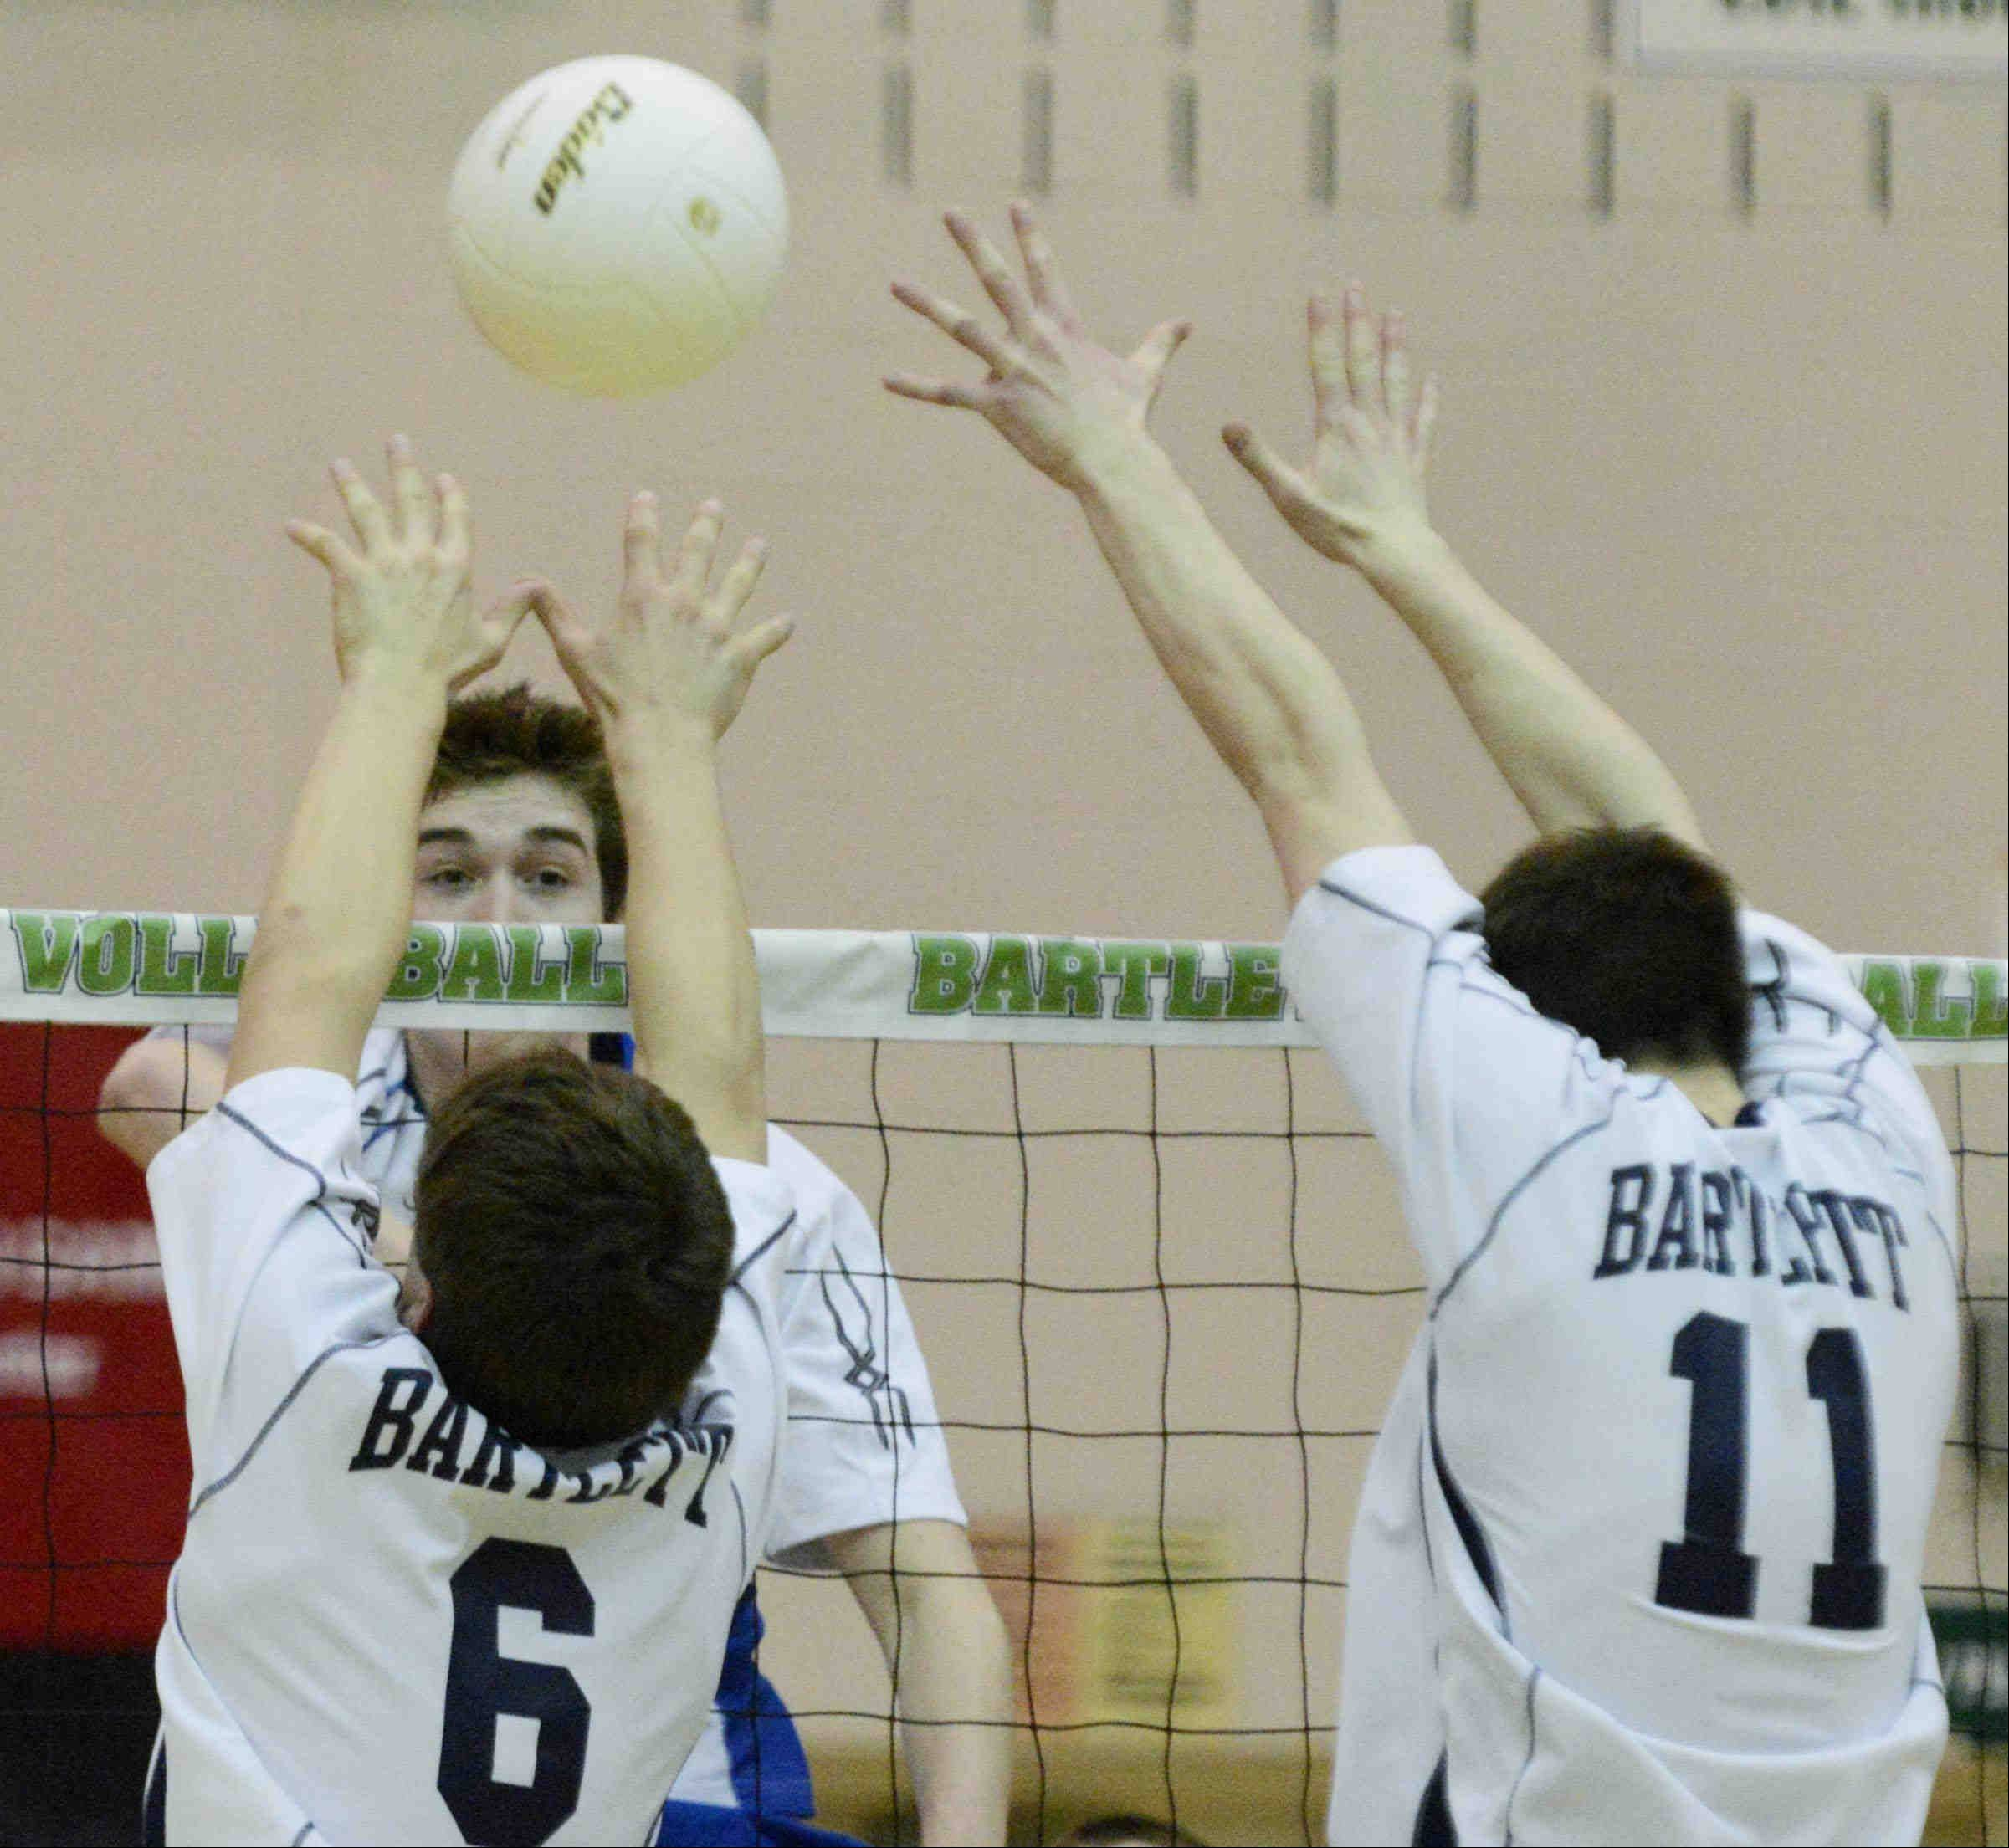 St. Francis' Matt Metzler watches his shot go past Bartlett's Jake Martin and Jack Blum on Wednesday in Bartlett.